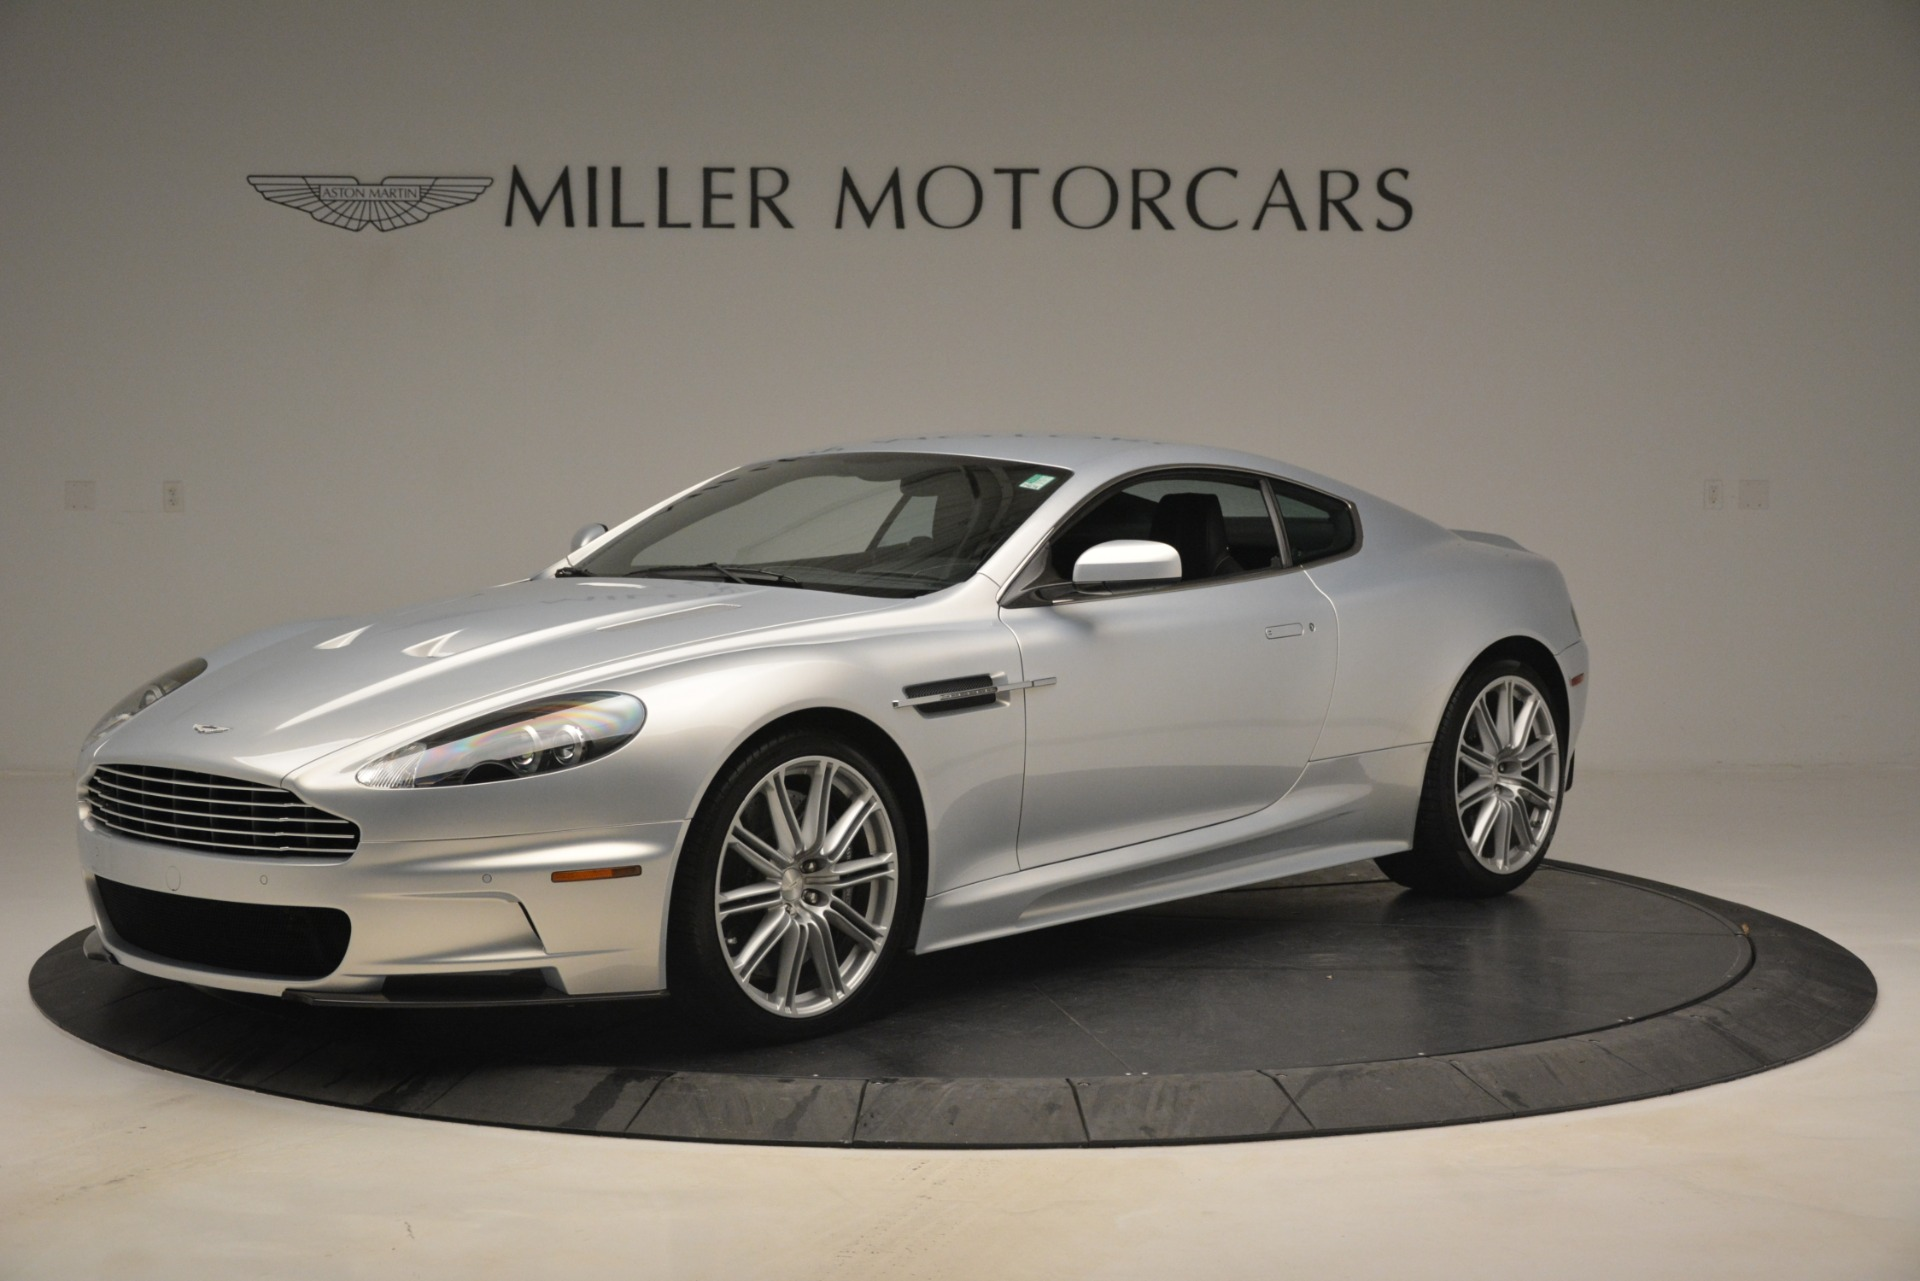 Used 2009 Aston Martin DBS Coupe for sale Sold at McLaren Greenwich in Greenwich CT 06830 1